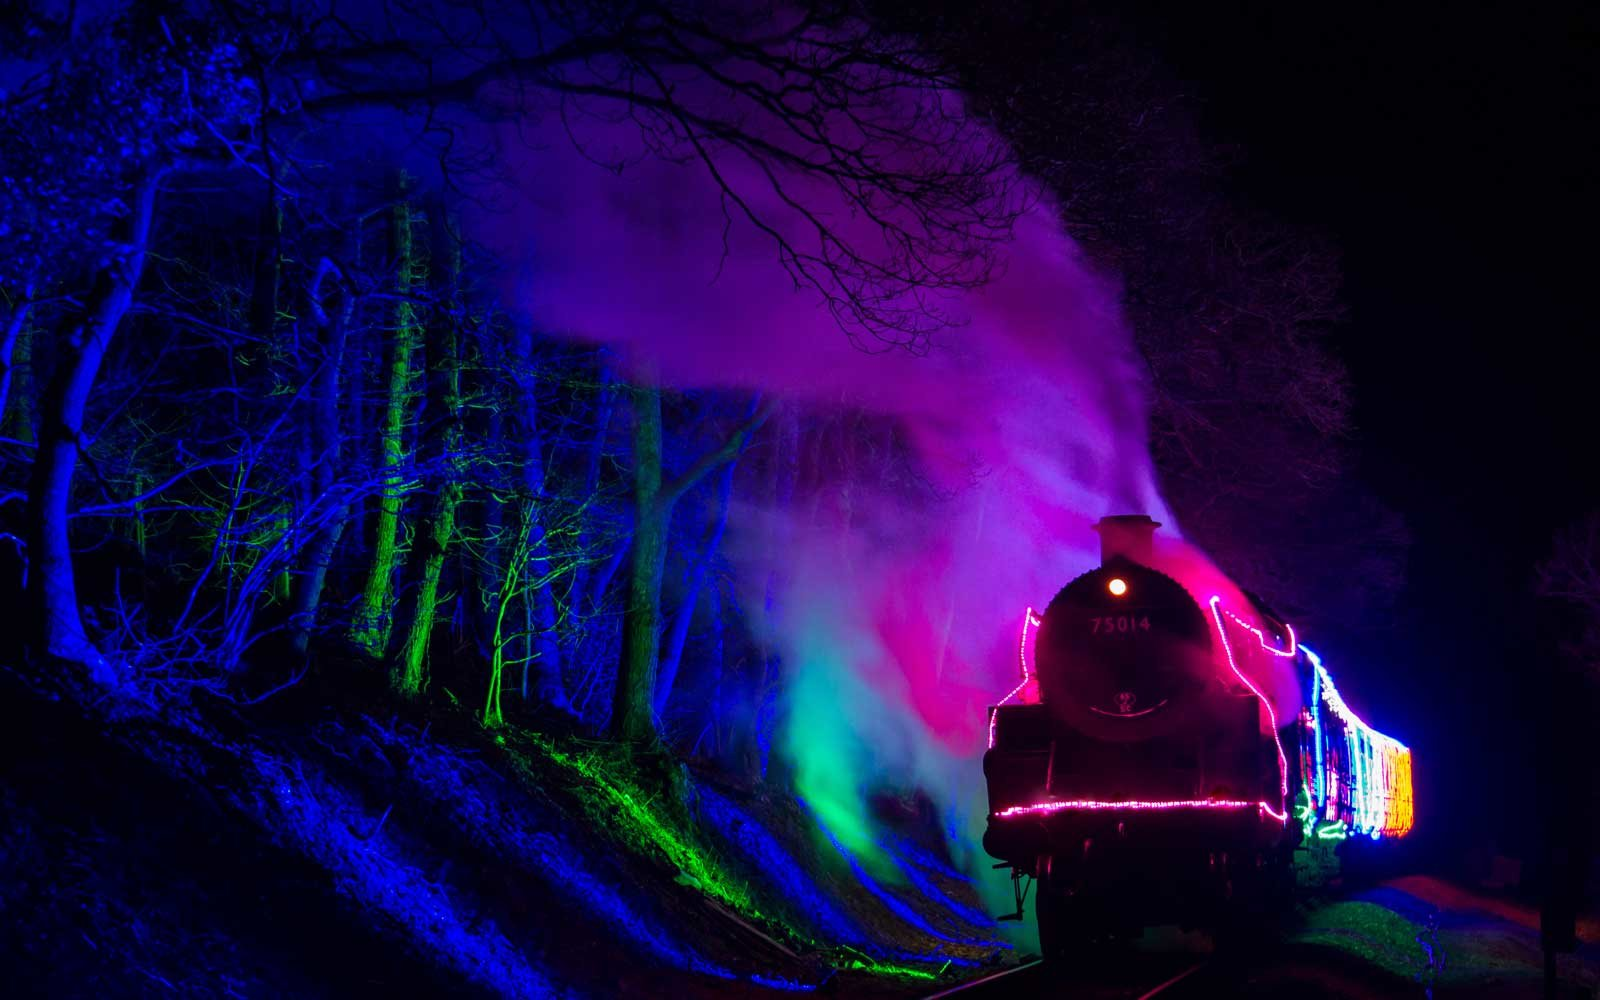 The Train of Lights: Devon, England